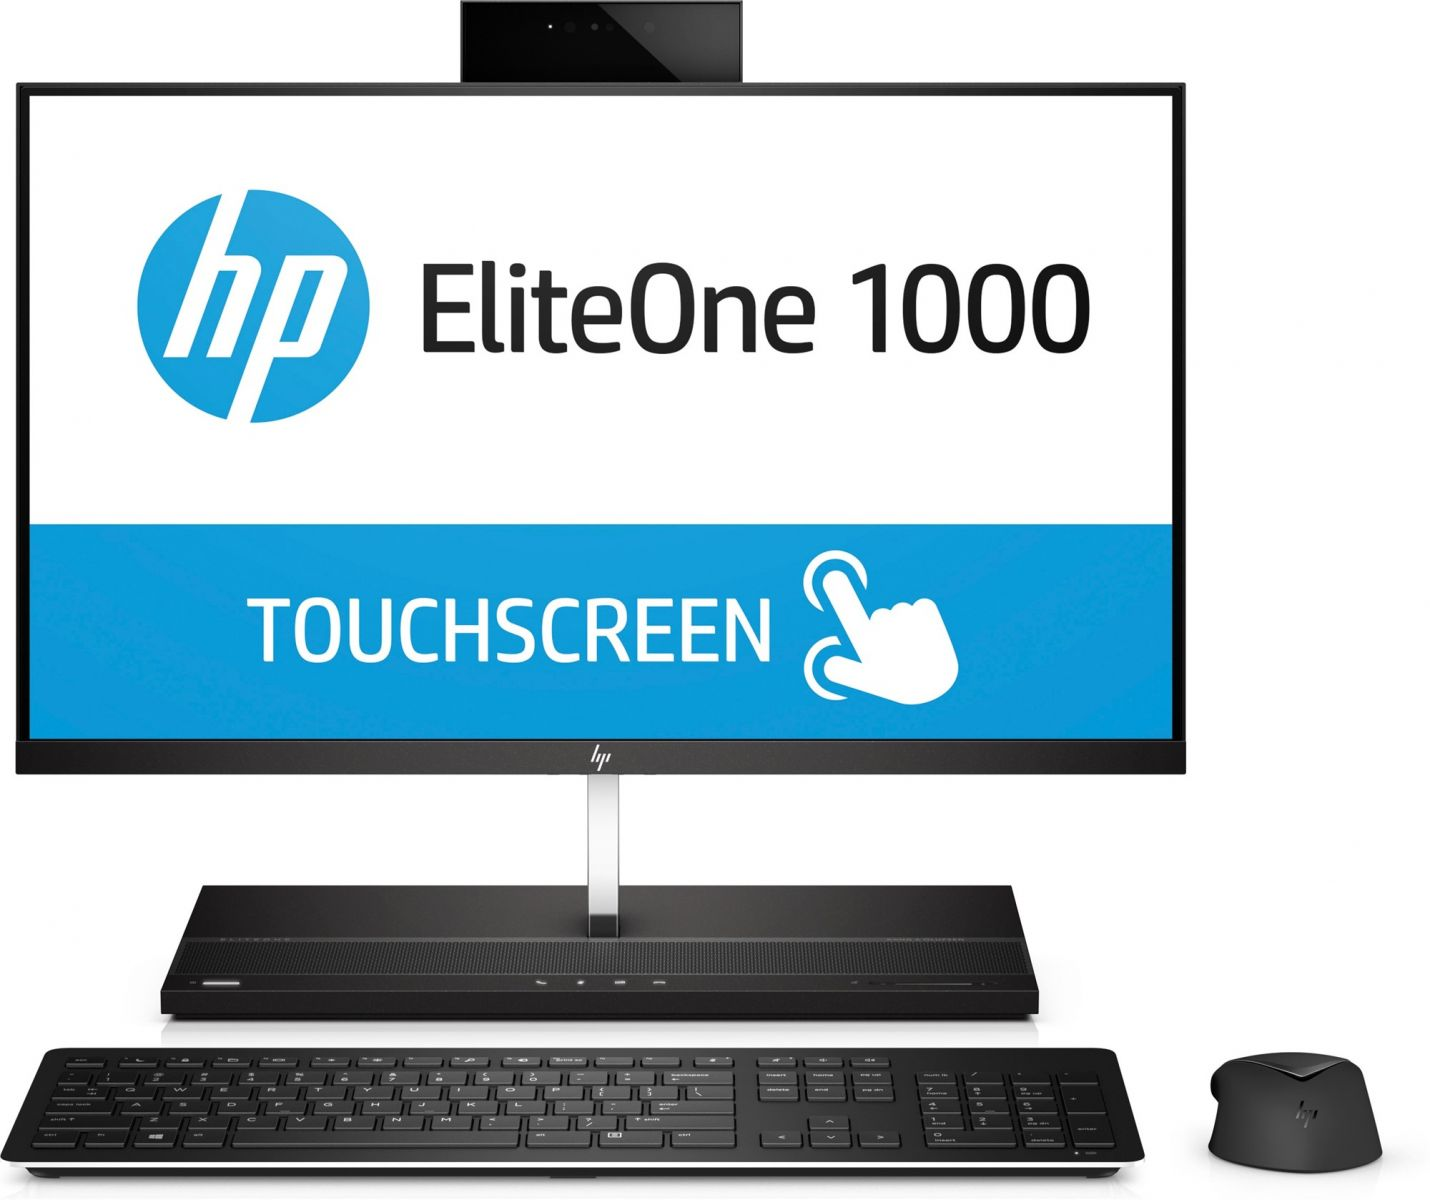 hp-all-in-one-elite-one-1000-g1-1